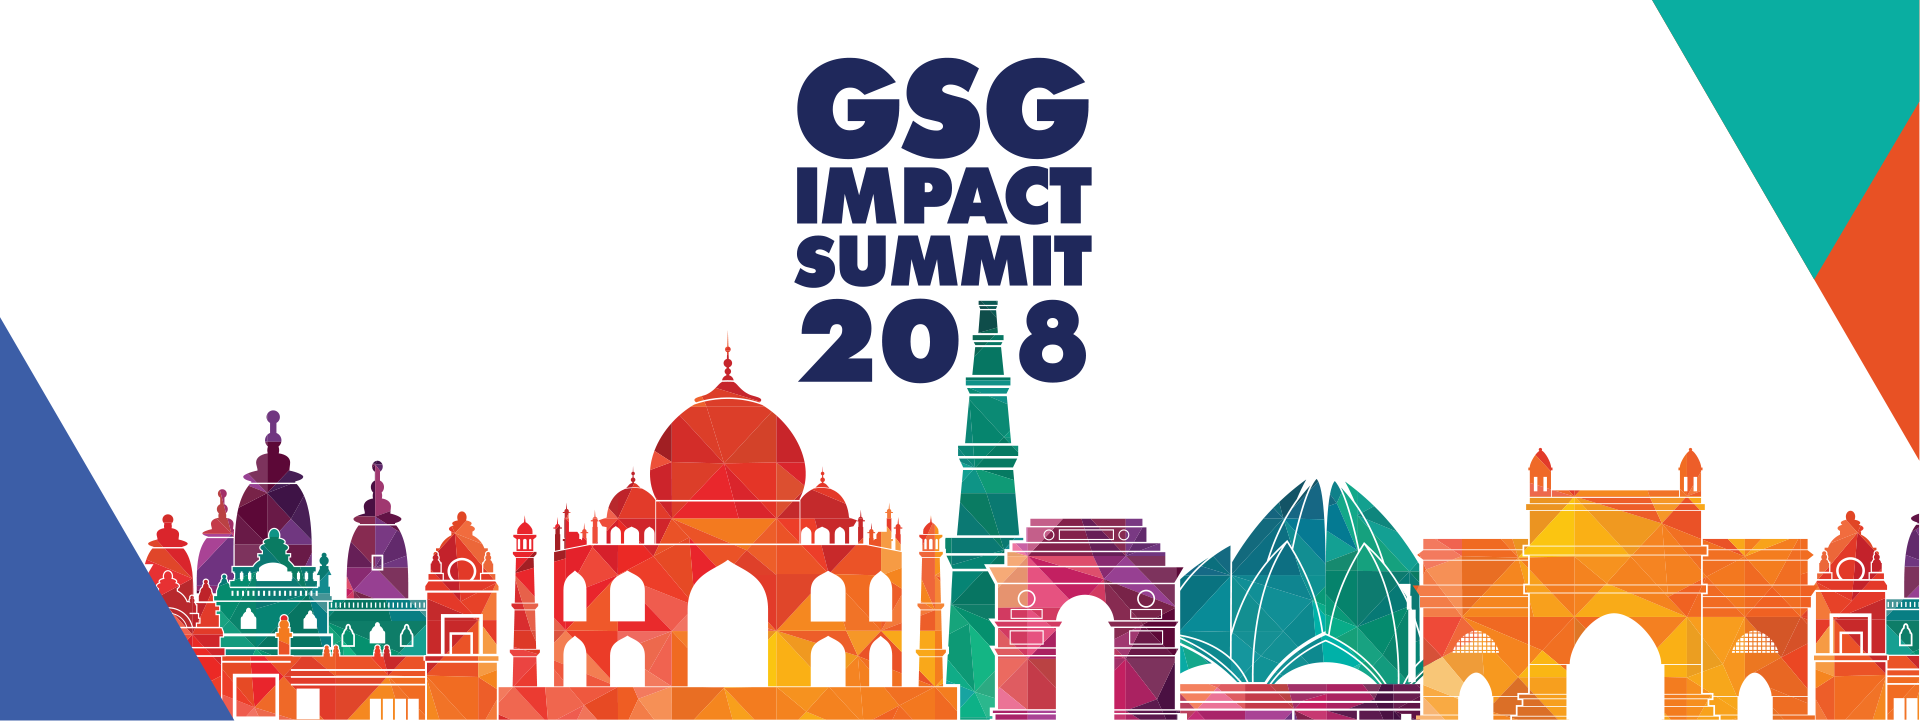 GSG Impact Summit 2018, New Delhi, India